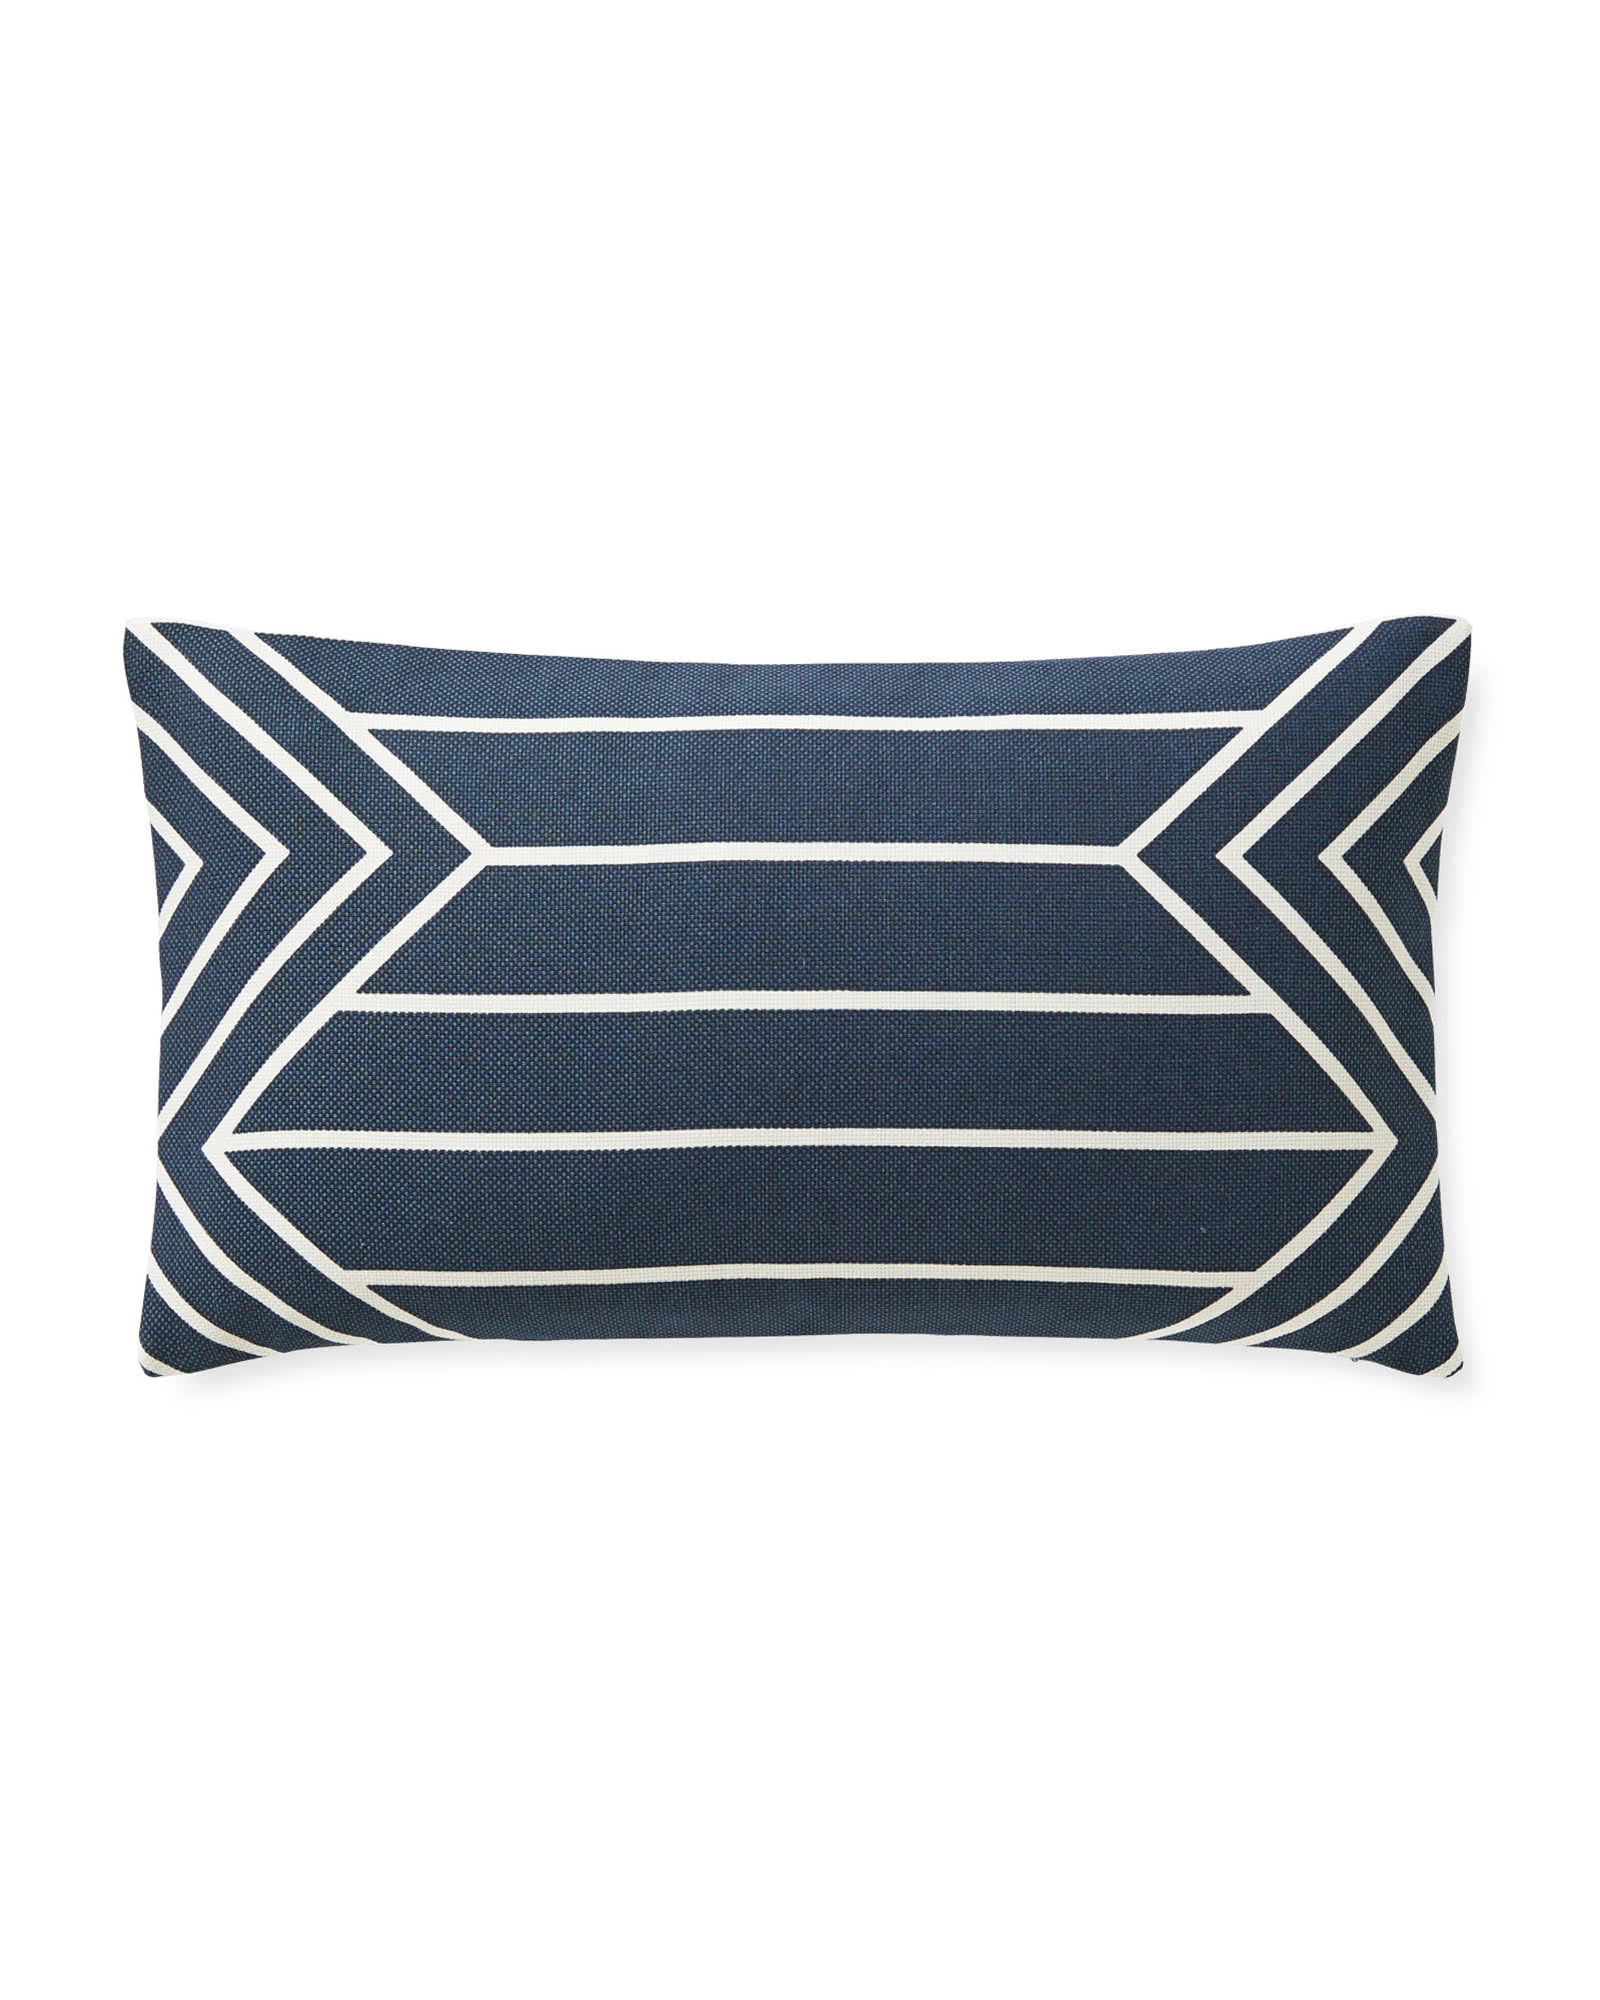 Portsmouth Outdoor Pillow Cover Serena Amp Lily